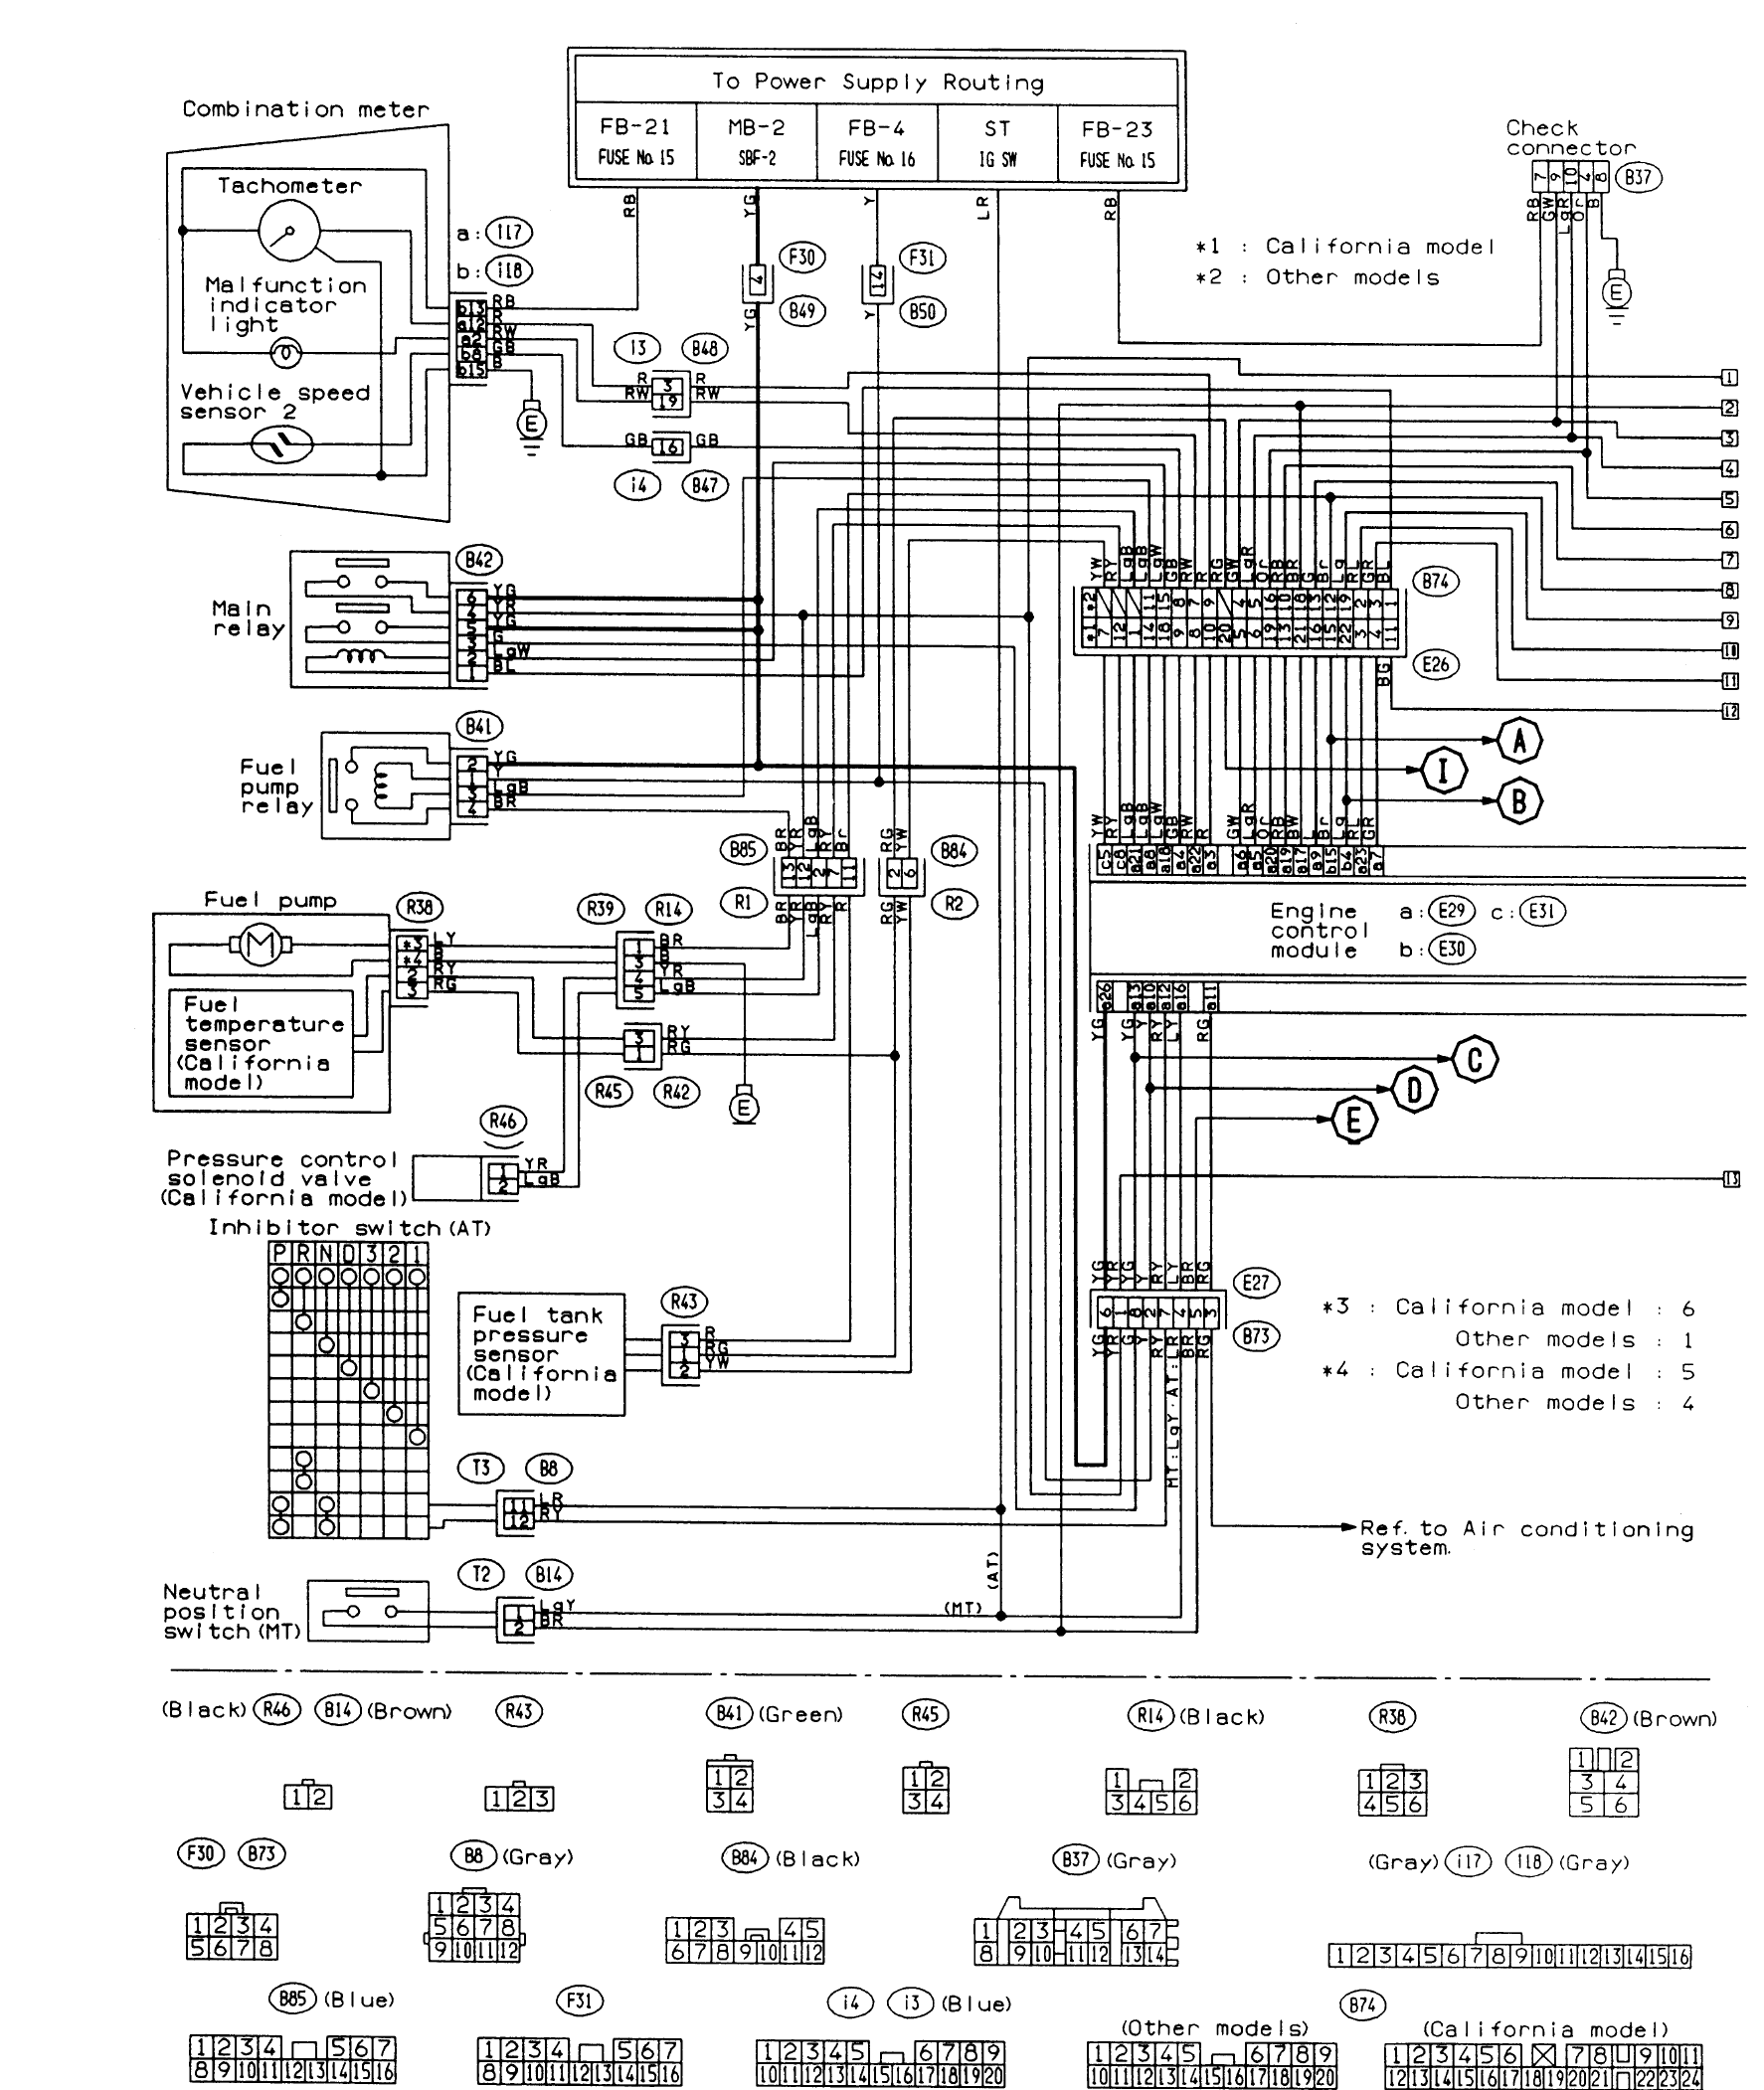 electrical diagram for ac unit in 2009 subaru forester | Pinouts for 95 impreza 18 ECU